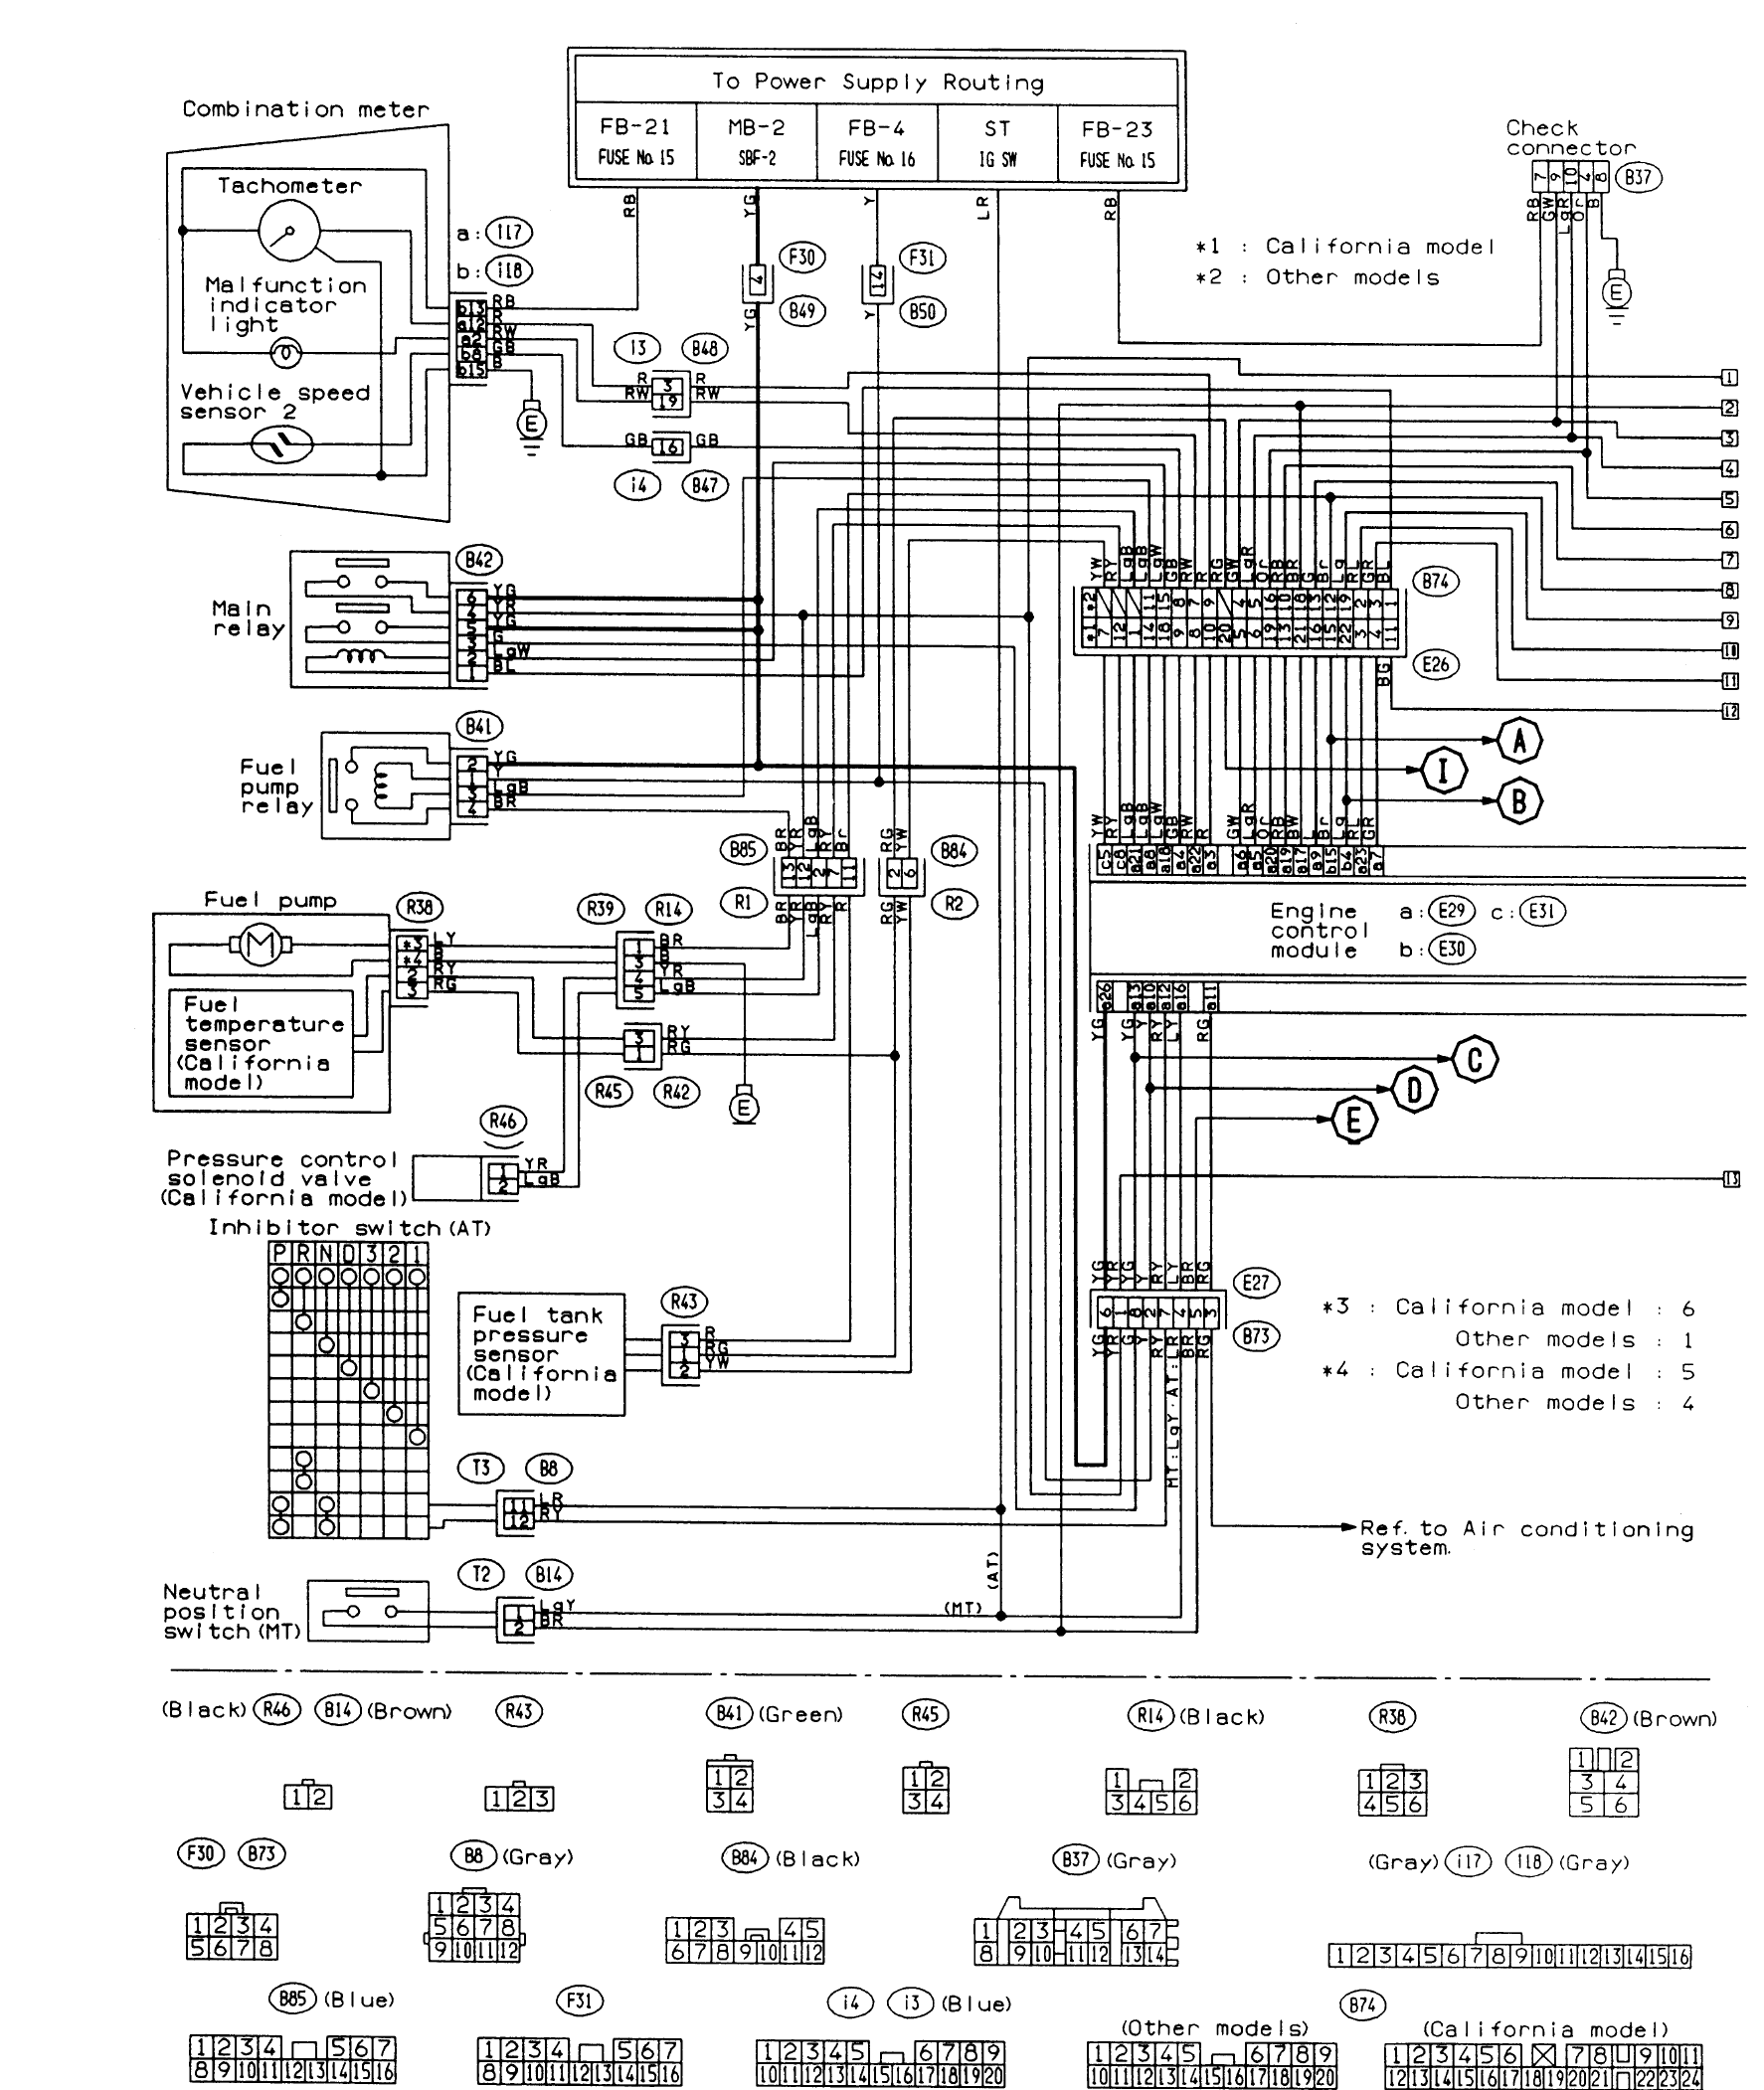 electrical diagram for ac unit in 2009 subaru forester | Pinouts for 95 impreza 18 ECU